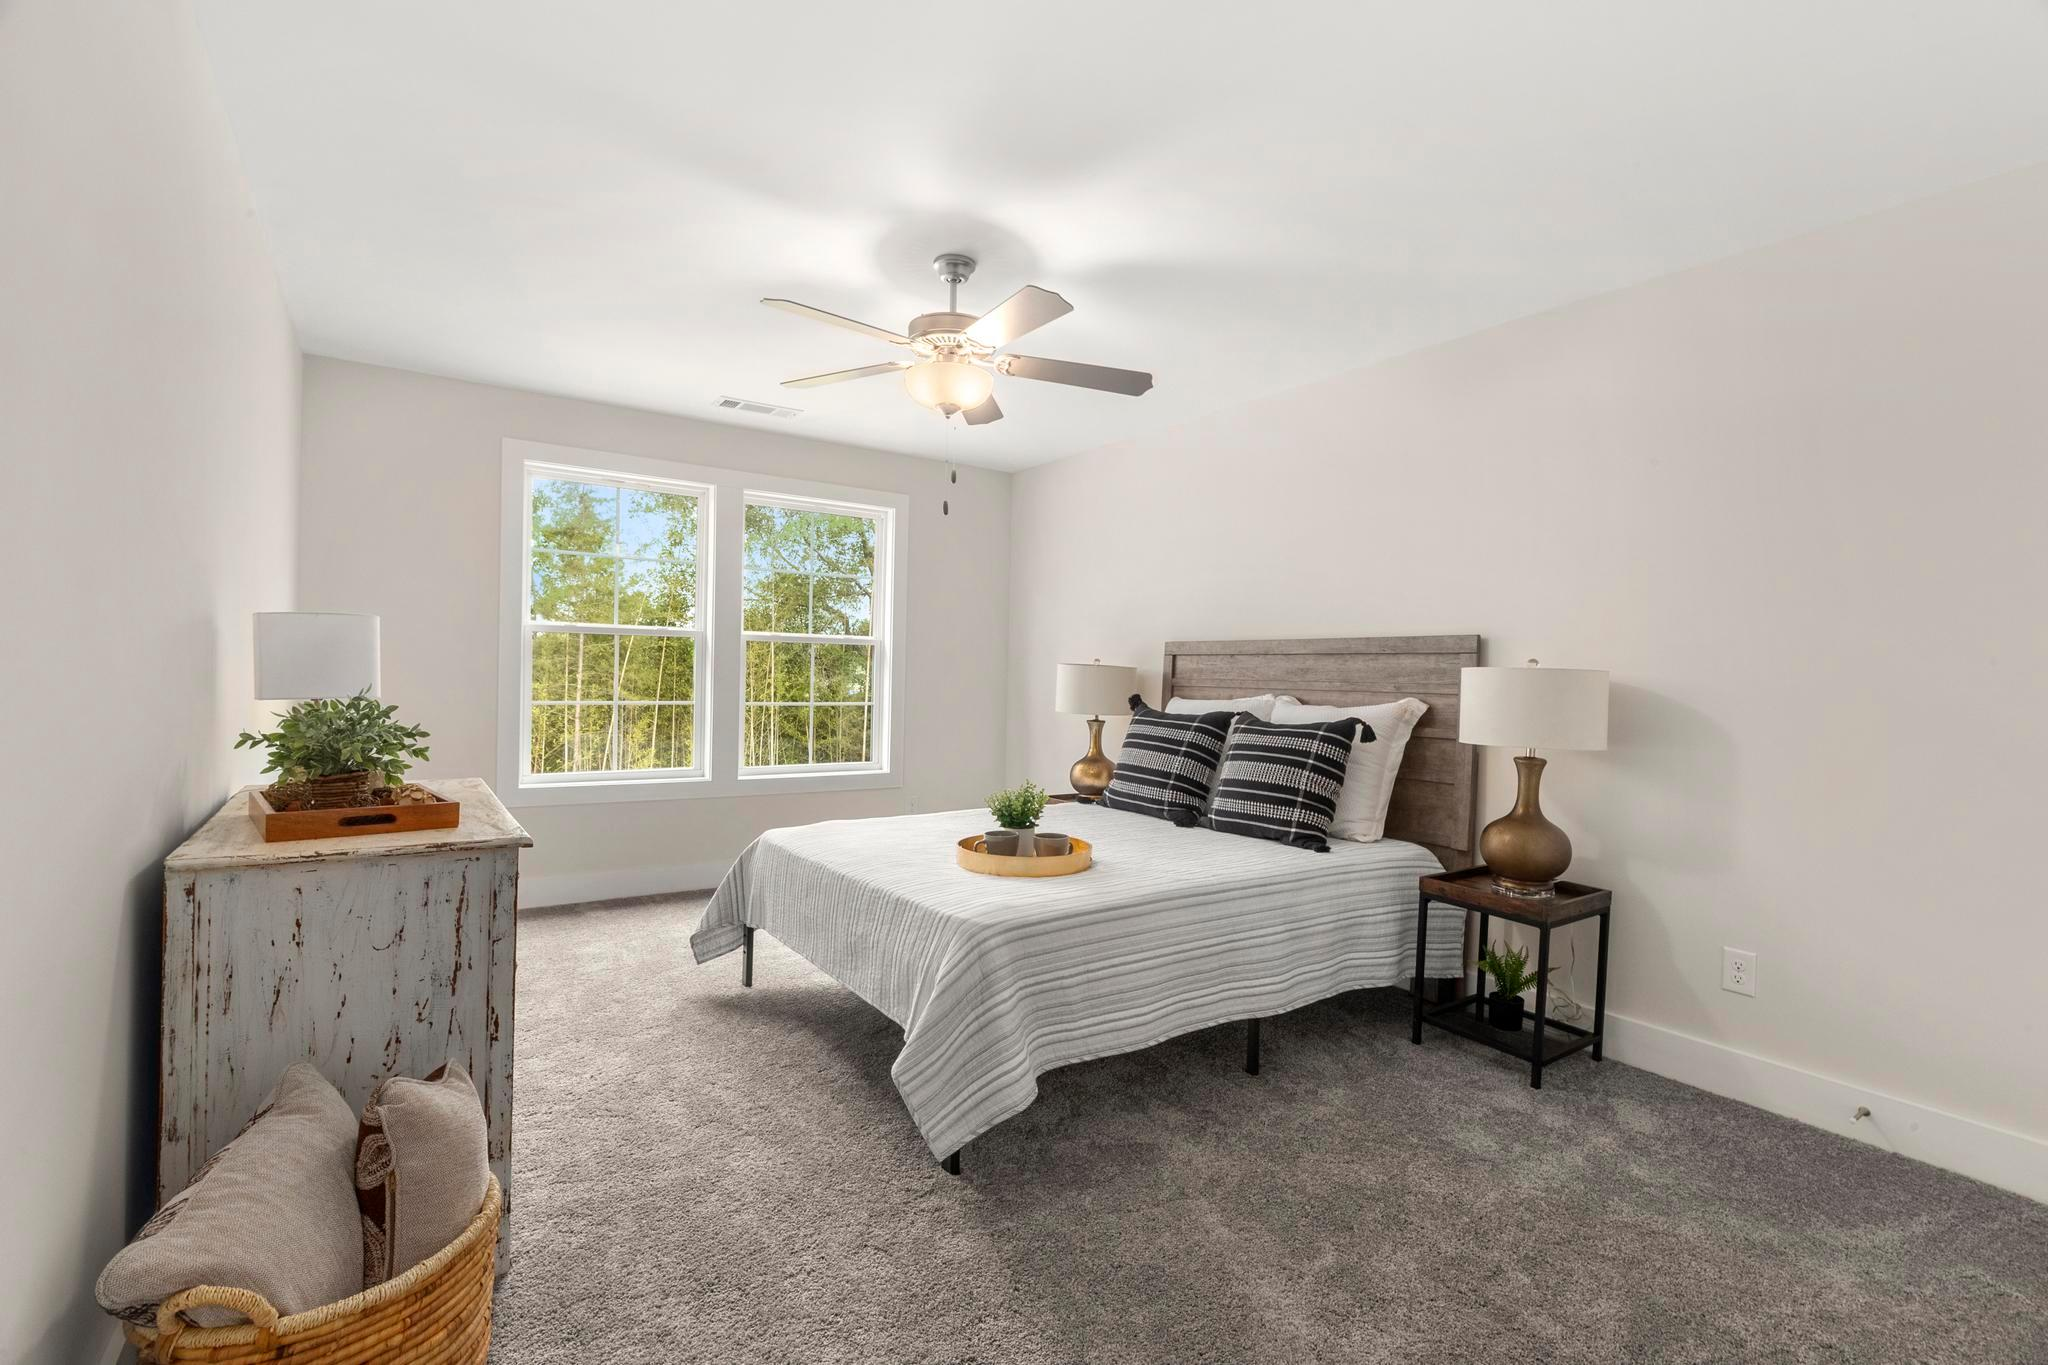 Bedroom featured in the 3 Bedroom Interior Unit By Holland Homes in Auburn-Opelika, AL